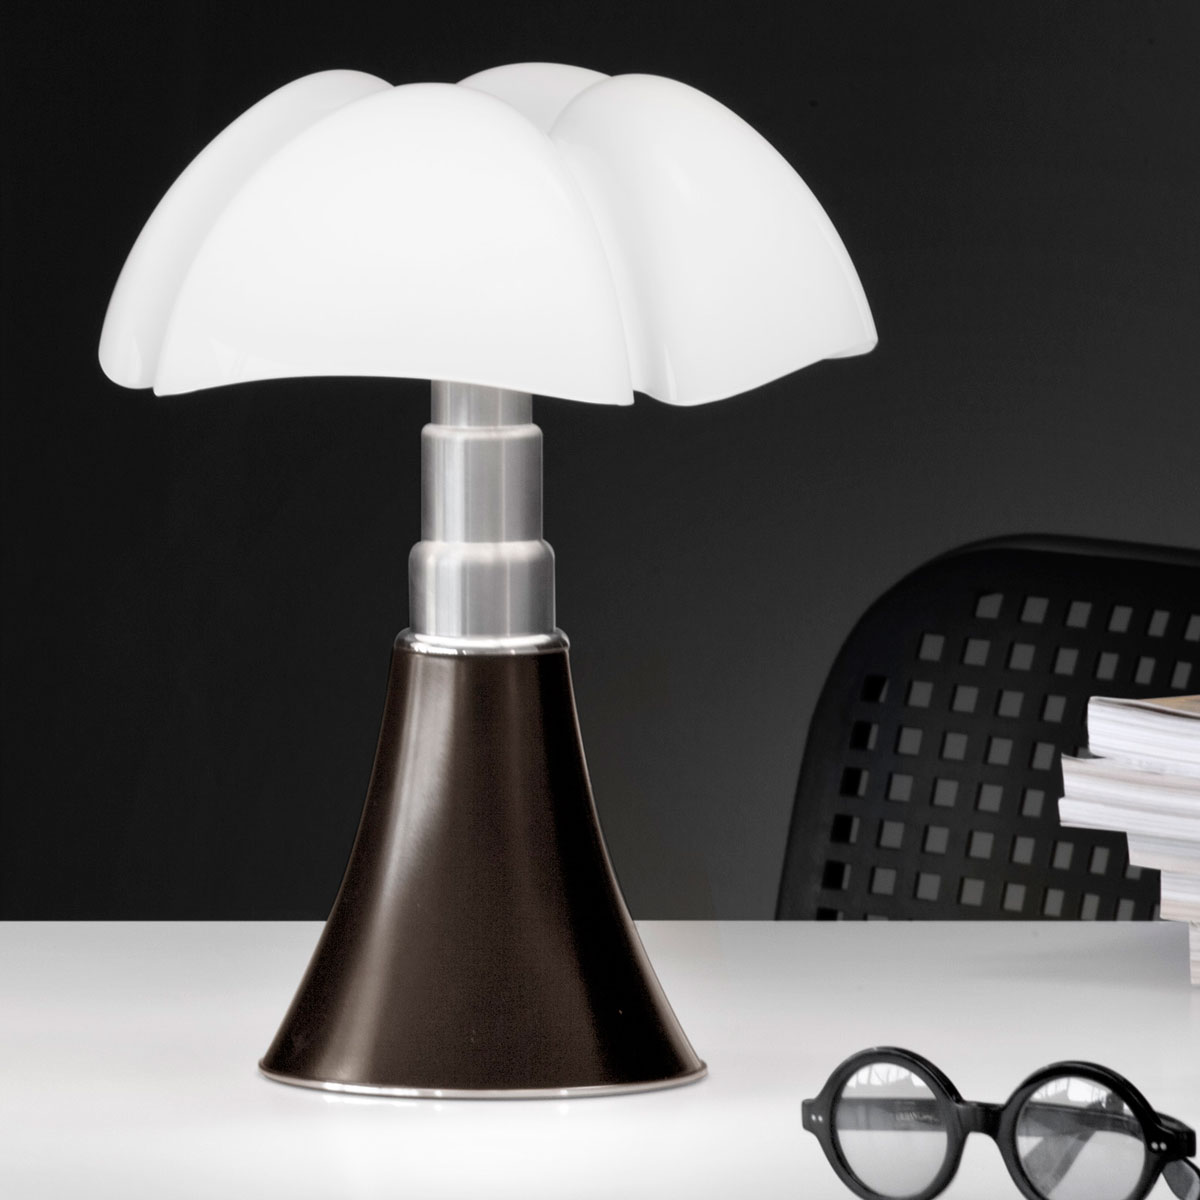 hommage la lampe design pipistrello a 50 ans. Black Bedroom Furniture Sets. Home Design Ideas